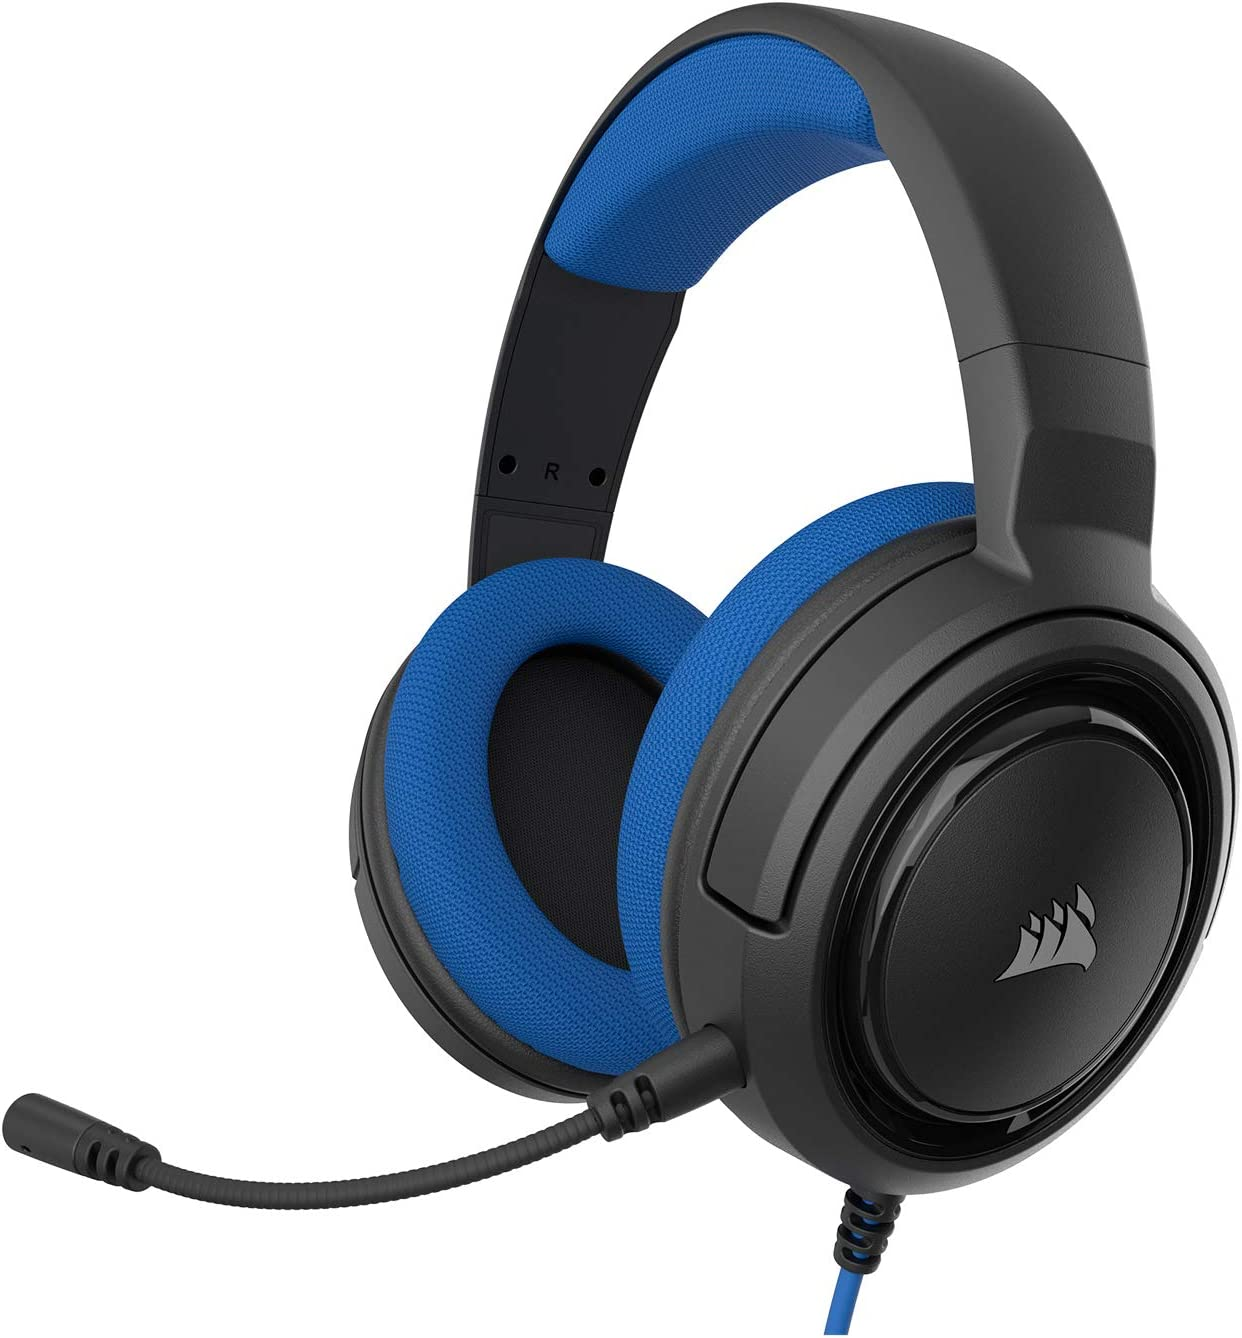 Corsair HS35 - Stereo Gaming Headset - Memory Foam Earcups - Discord Certified- Works with PC, Xbox Series X, Xbox Series S, Xbox One, PS5, PS4, Nintendo Switch and Mobile – Blue